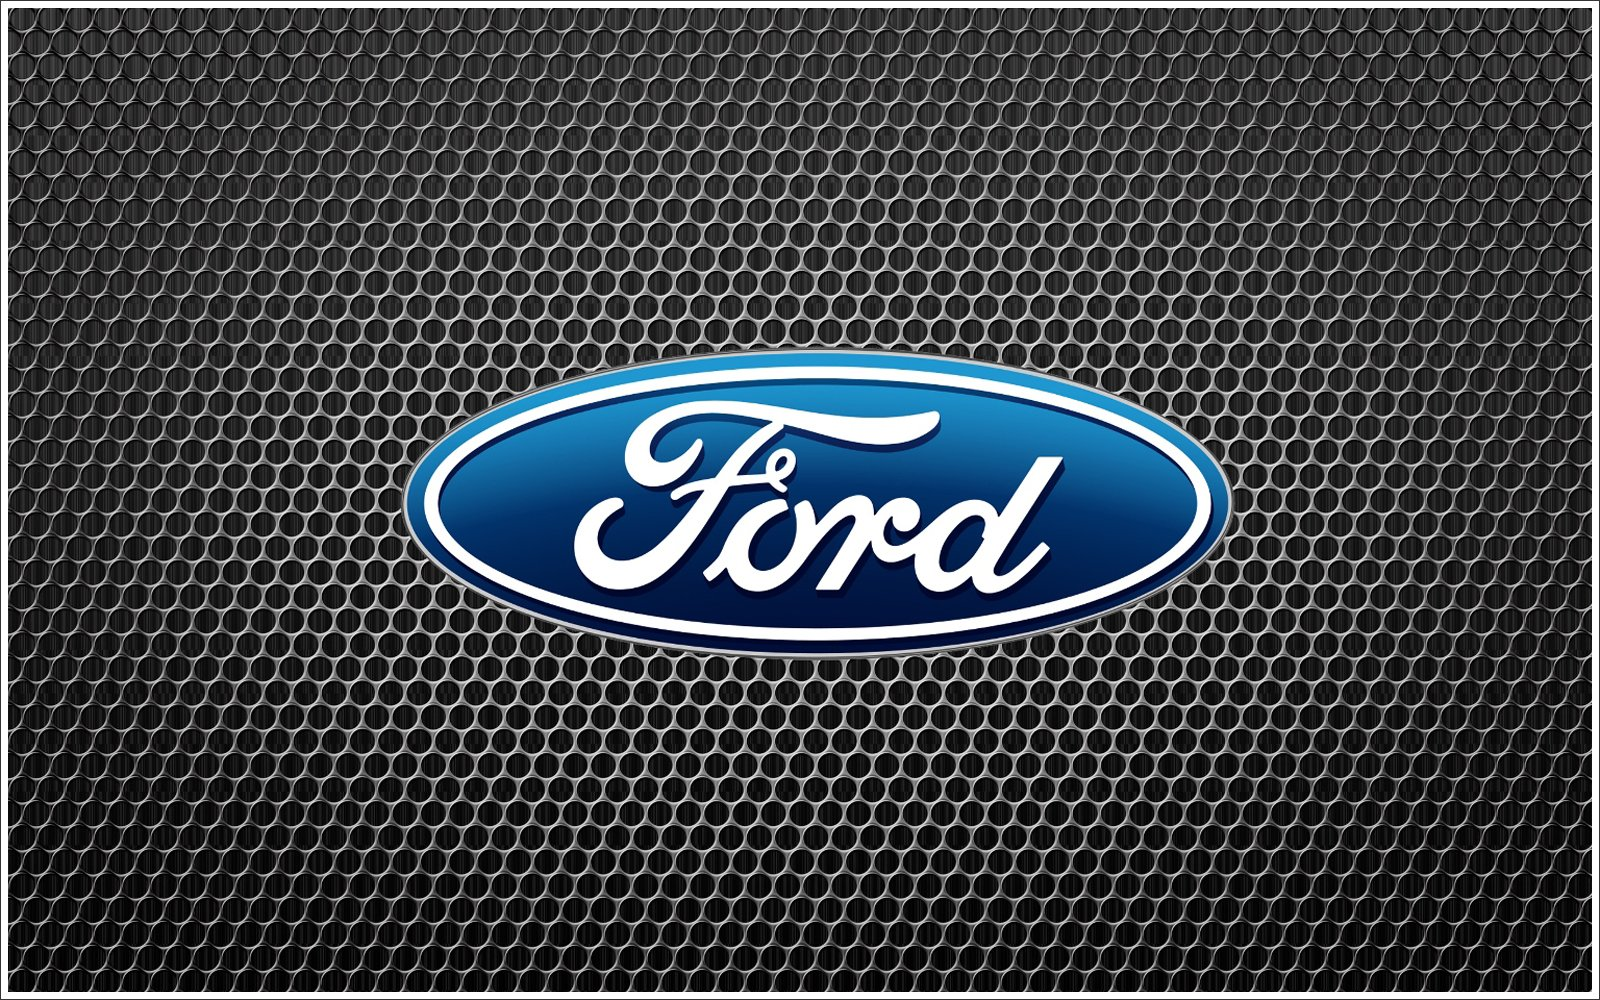 Ford Logo Meaning And History Latest Models World Cars